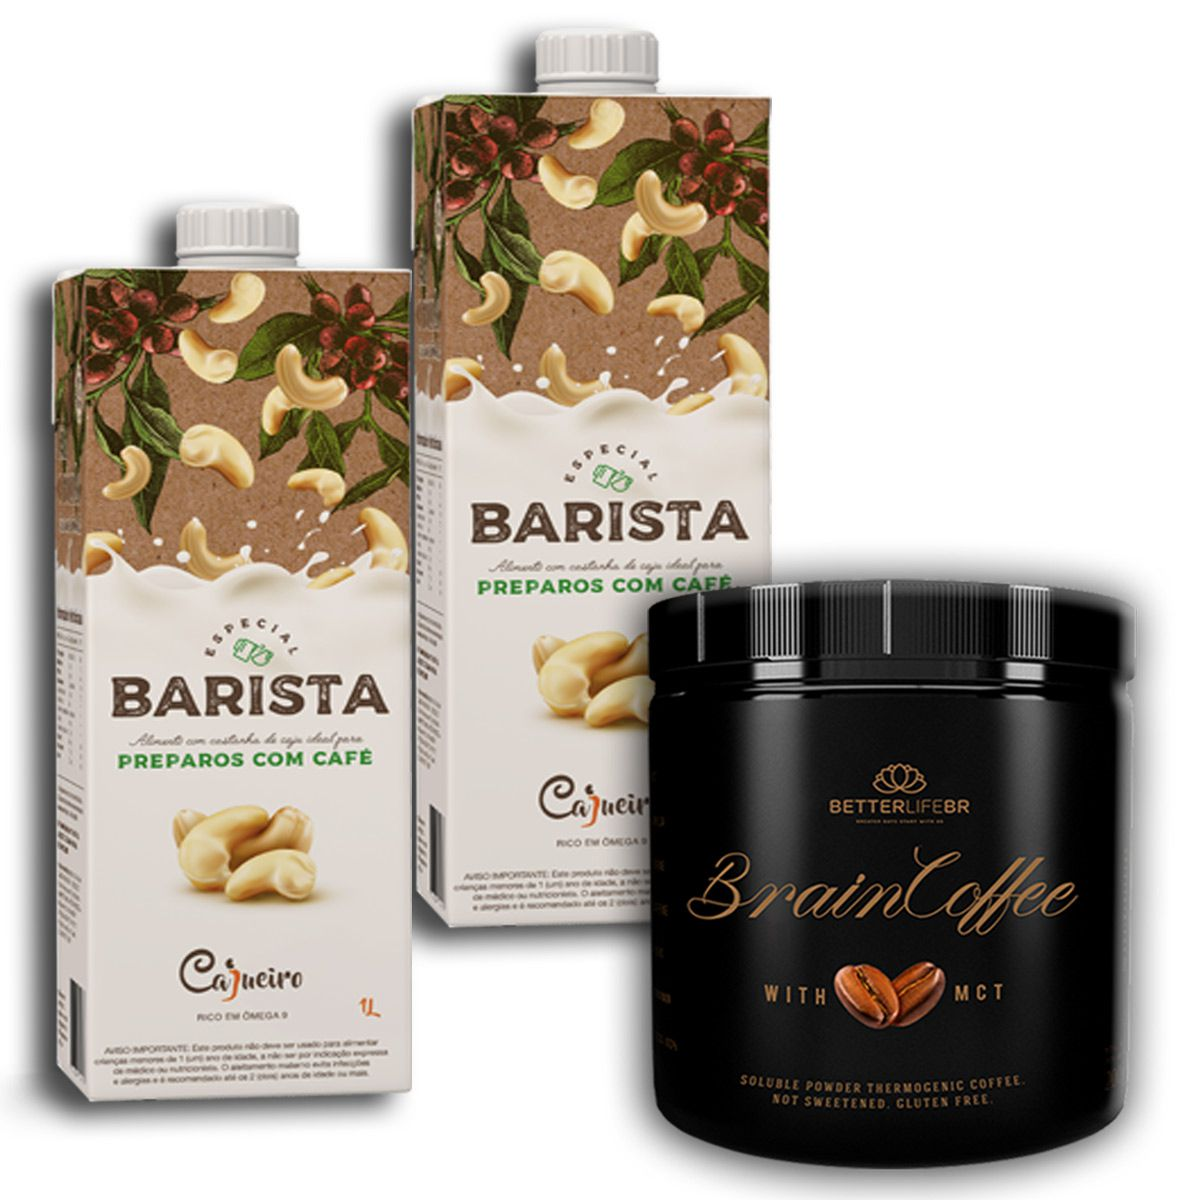 Brain Coffee com MCT 200g Betterlife 2 Leite Vegetal Barista 1lt Cajueiro